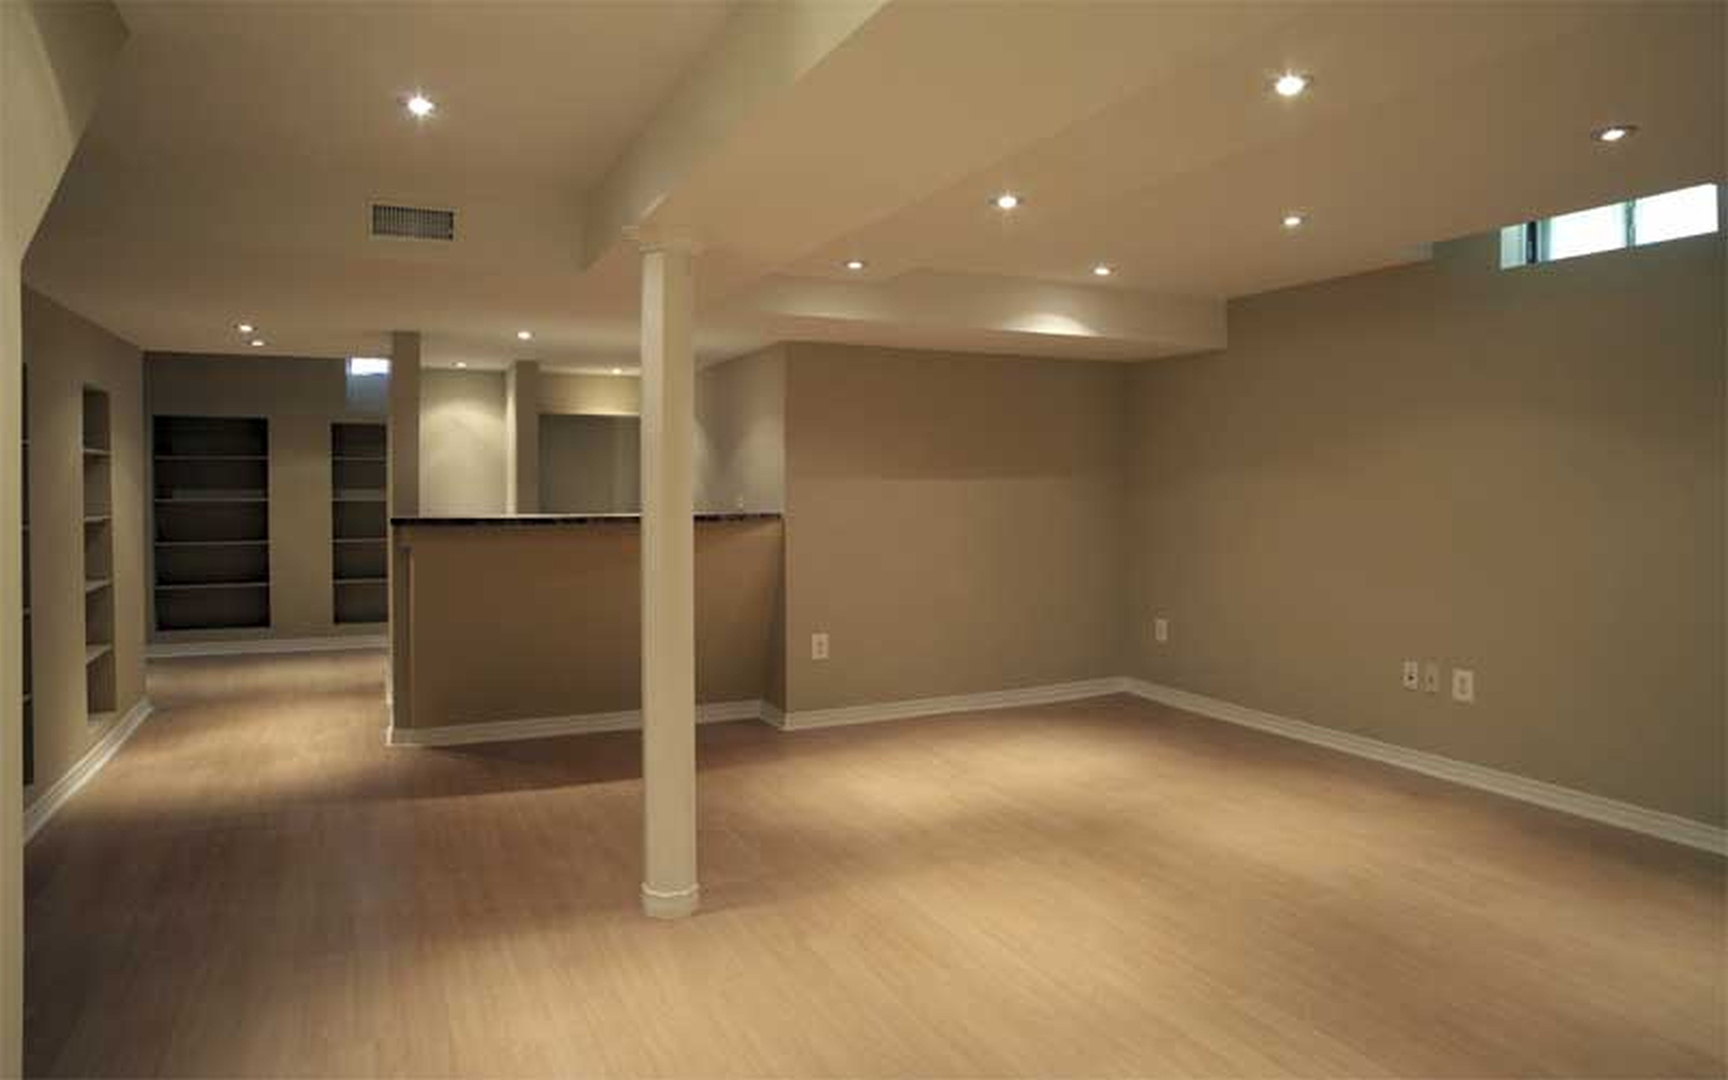 Basement Remodeling Contractors remodeling contractor orange nj 07050 bathroom, kitchen, basement